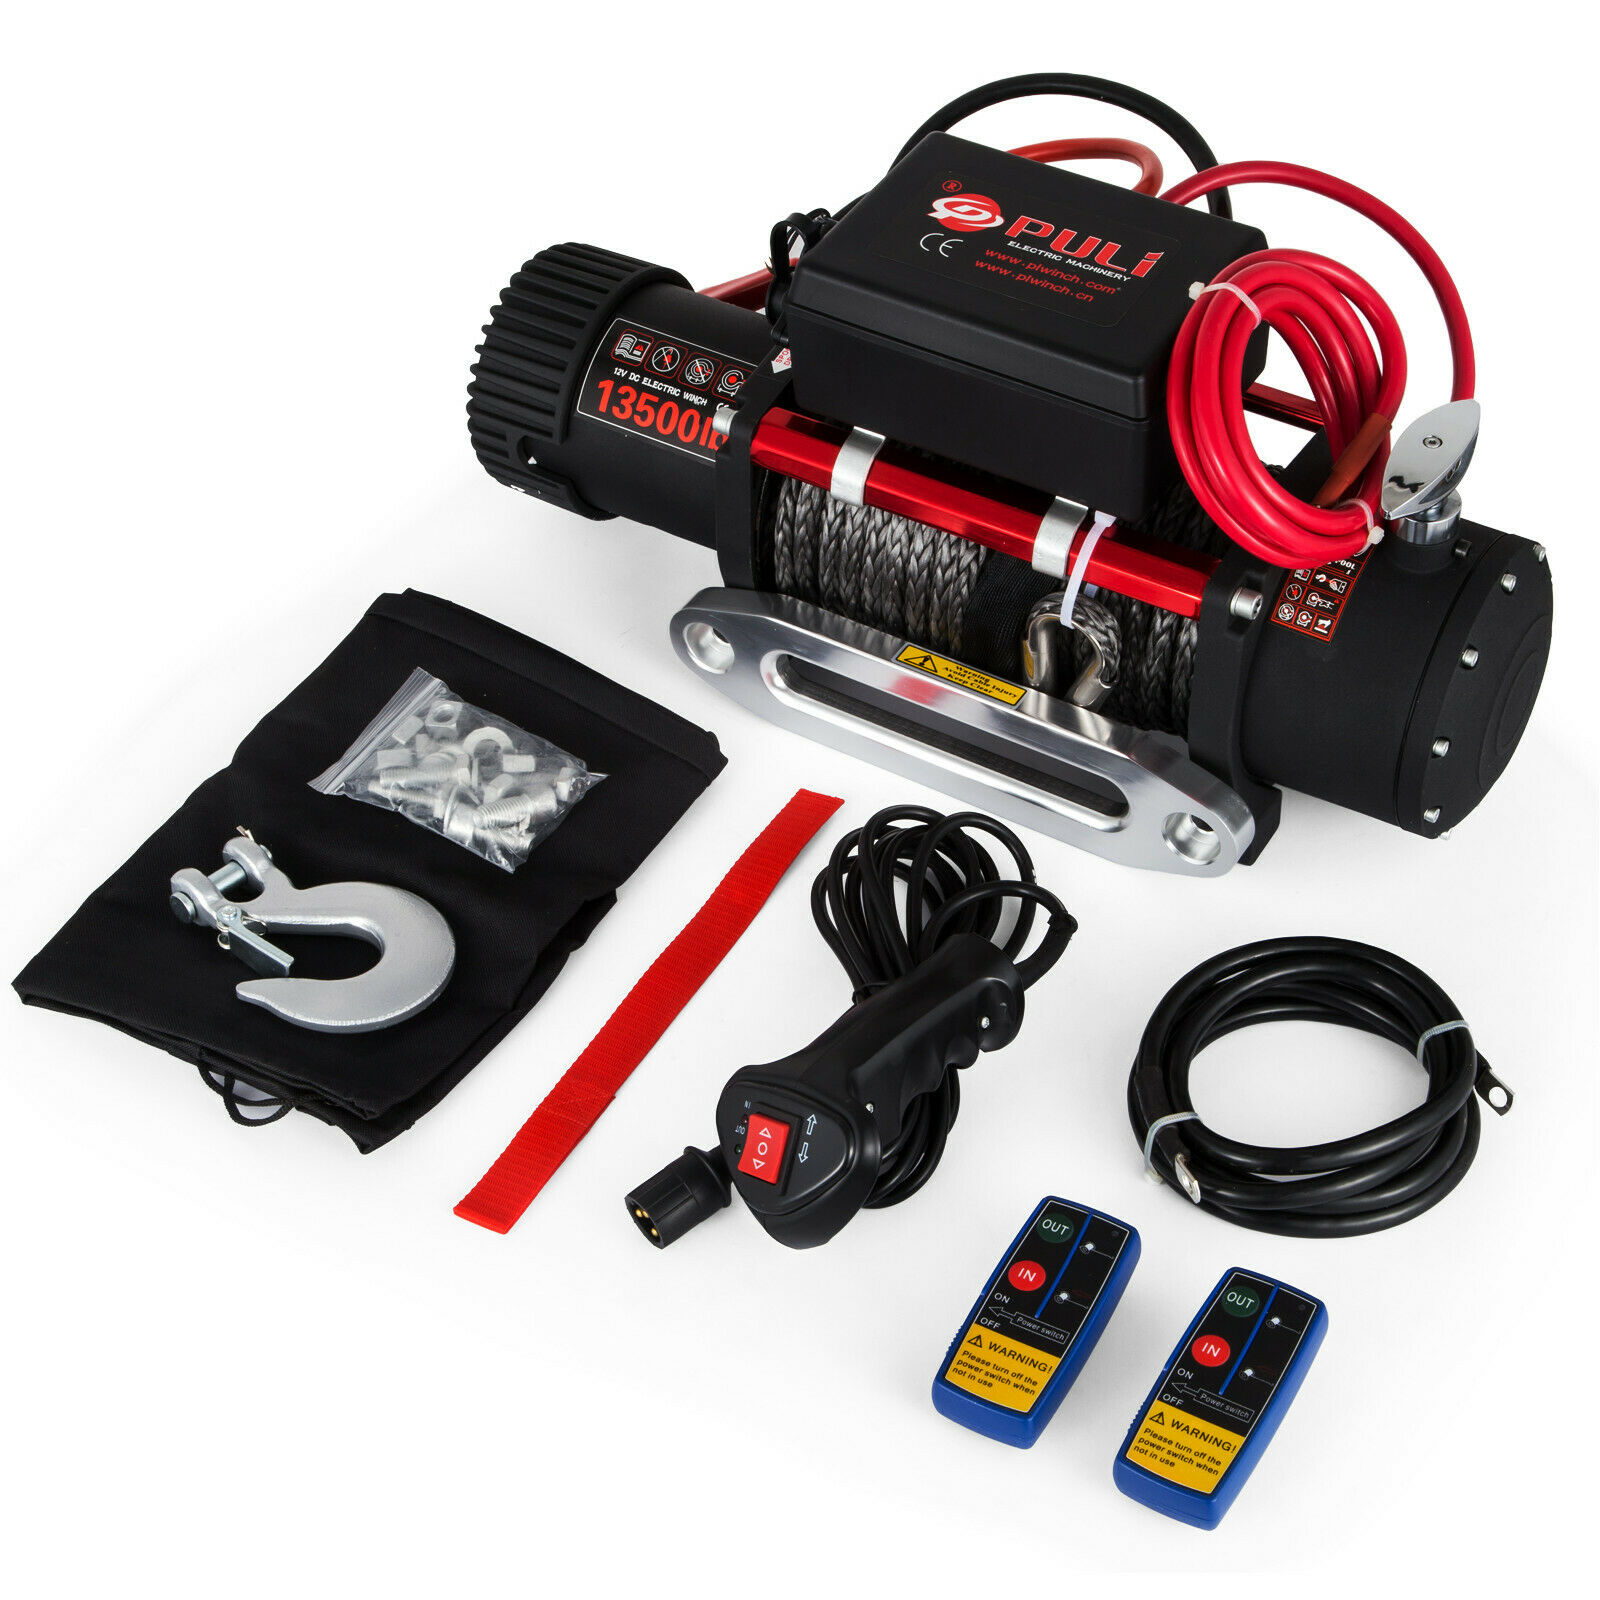 Gear Train Roller Fairlead 13500LBS 12V Electric Synthetic Rope Winch